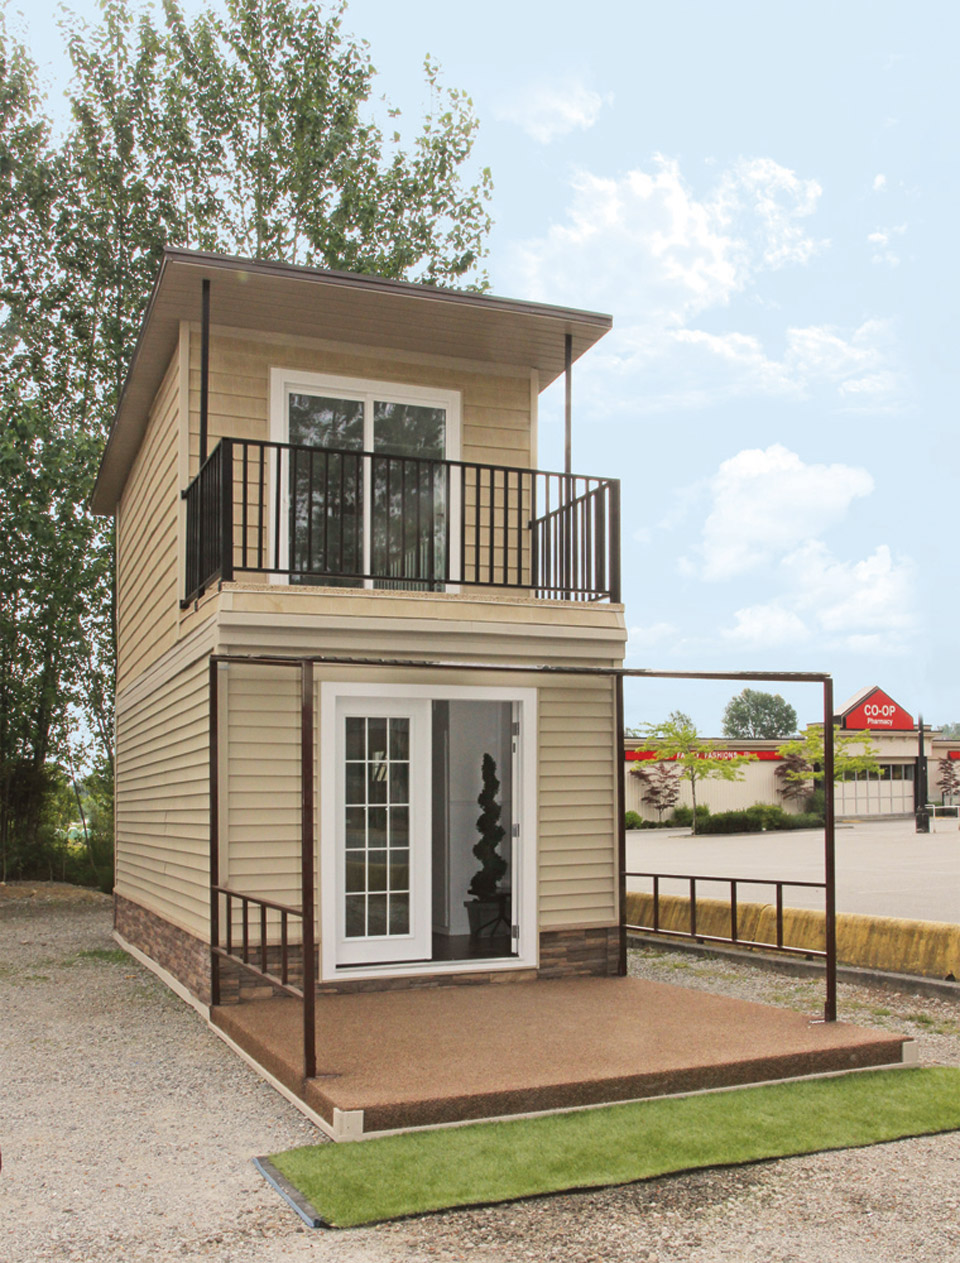 Do It Yourself Home Design: The Eagle 1: A 350 Sq. Ft. 2-Story Steel Framed Micro Home